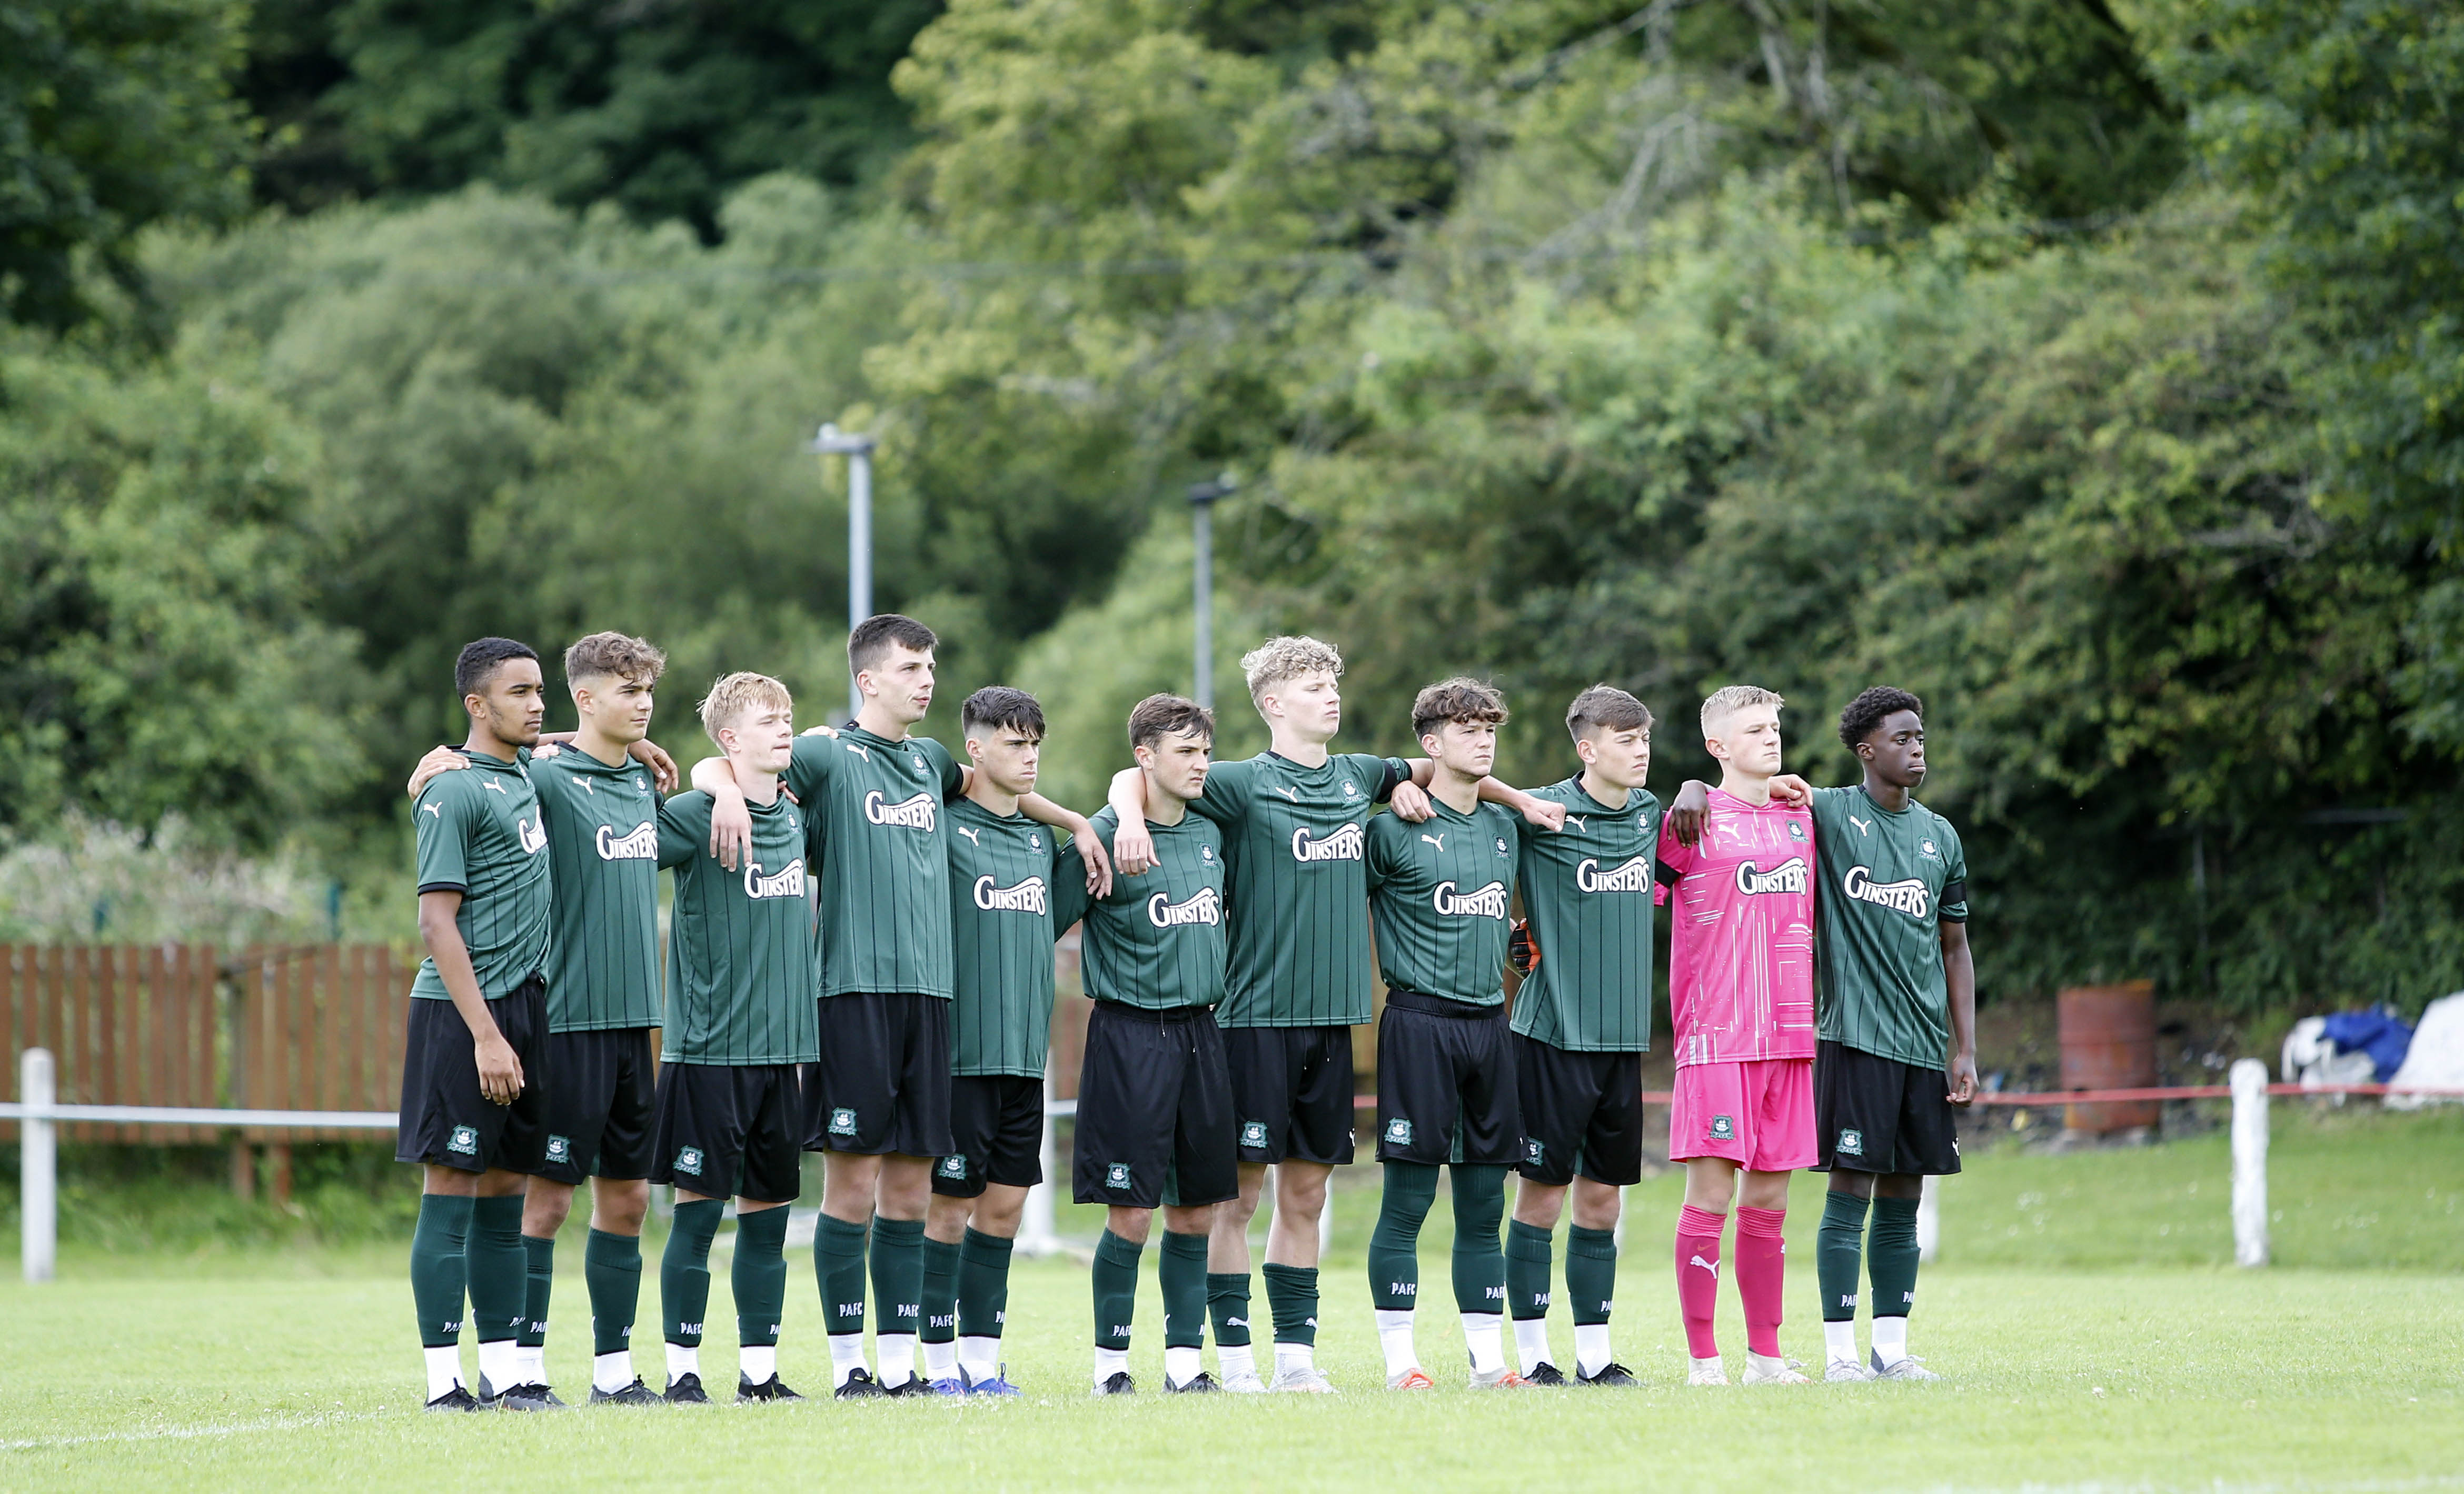 Argyle Academy players line up before a game